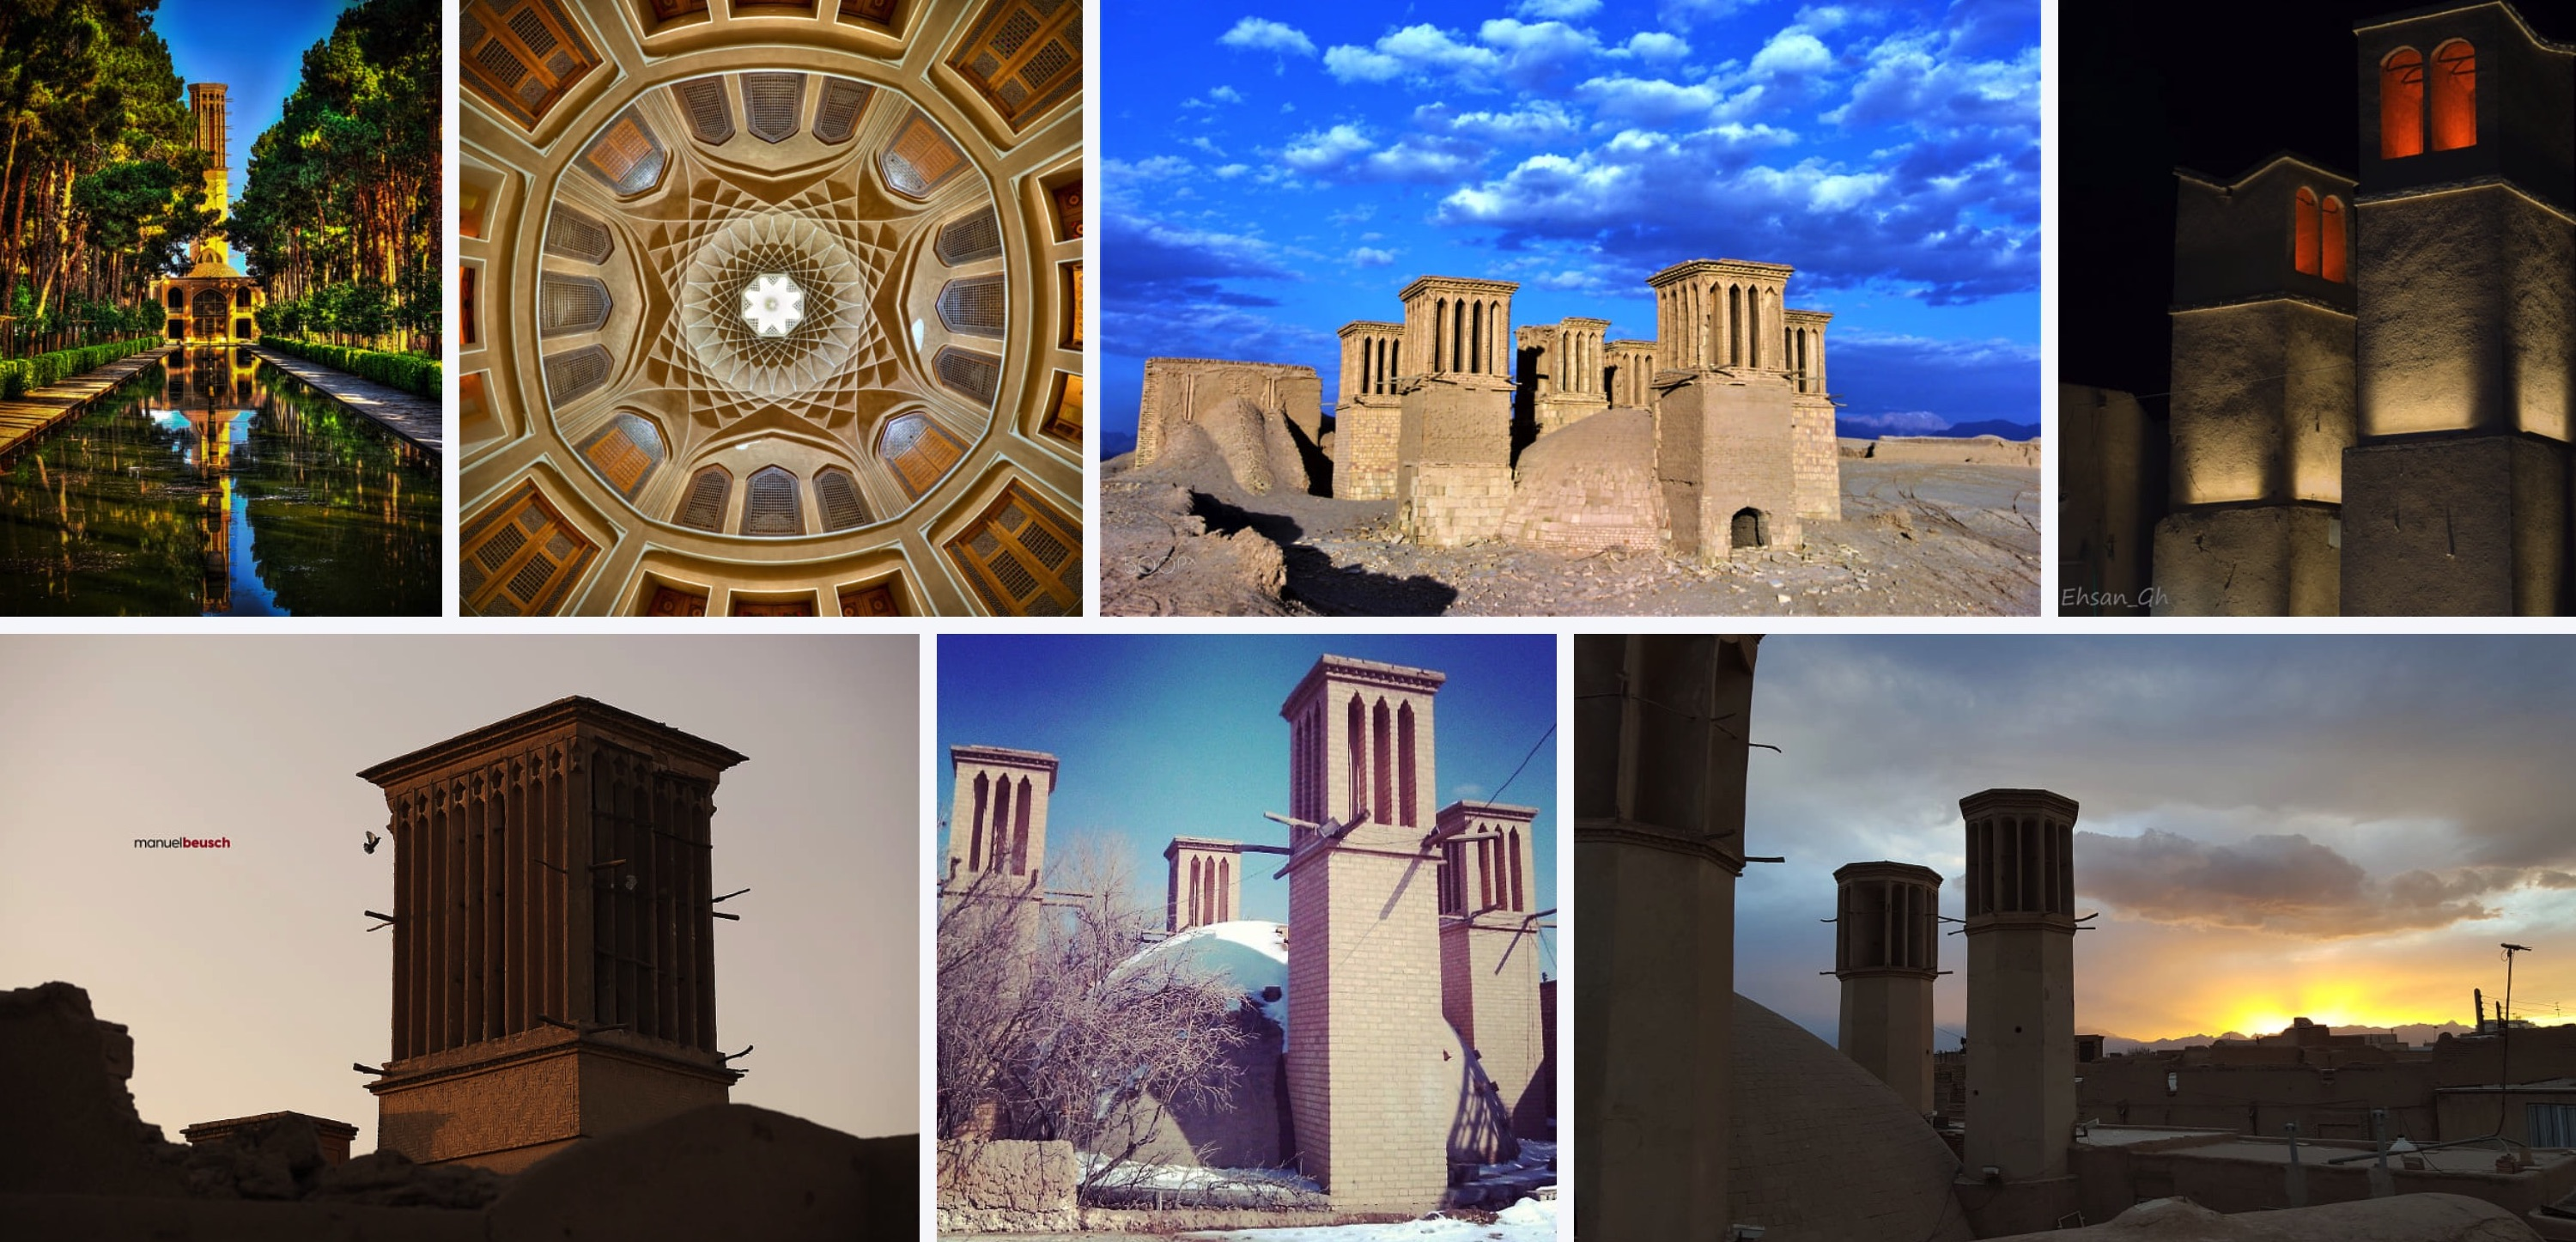 wind towers of yazd in iran photos